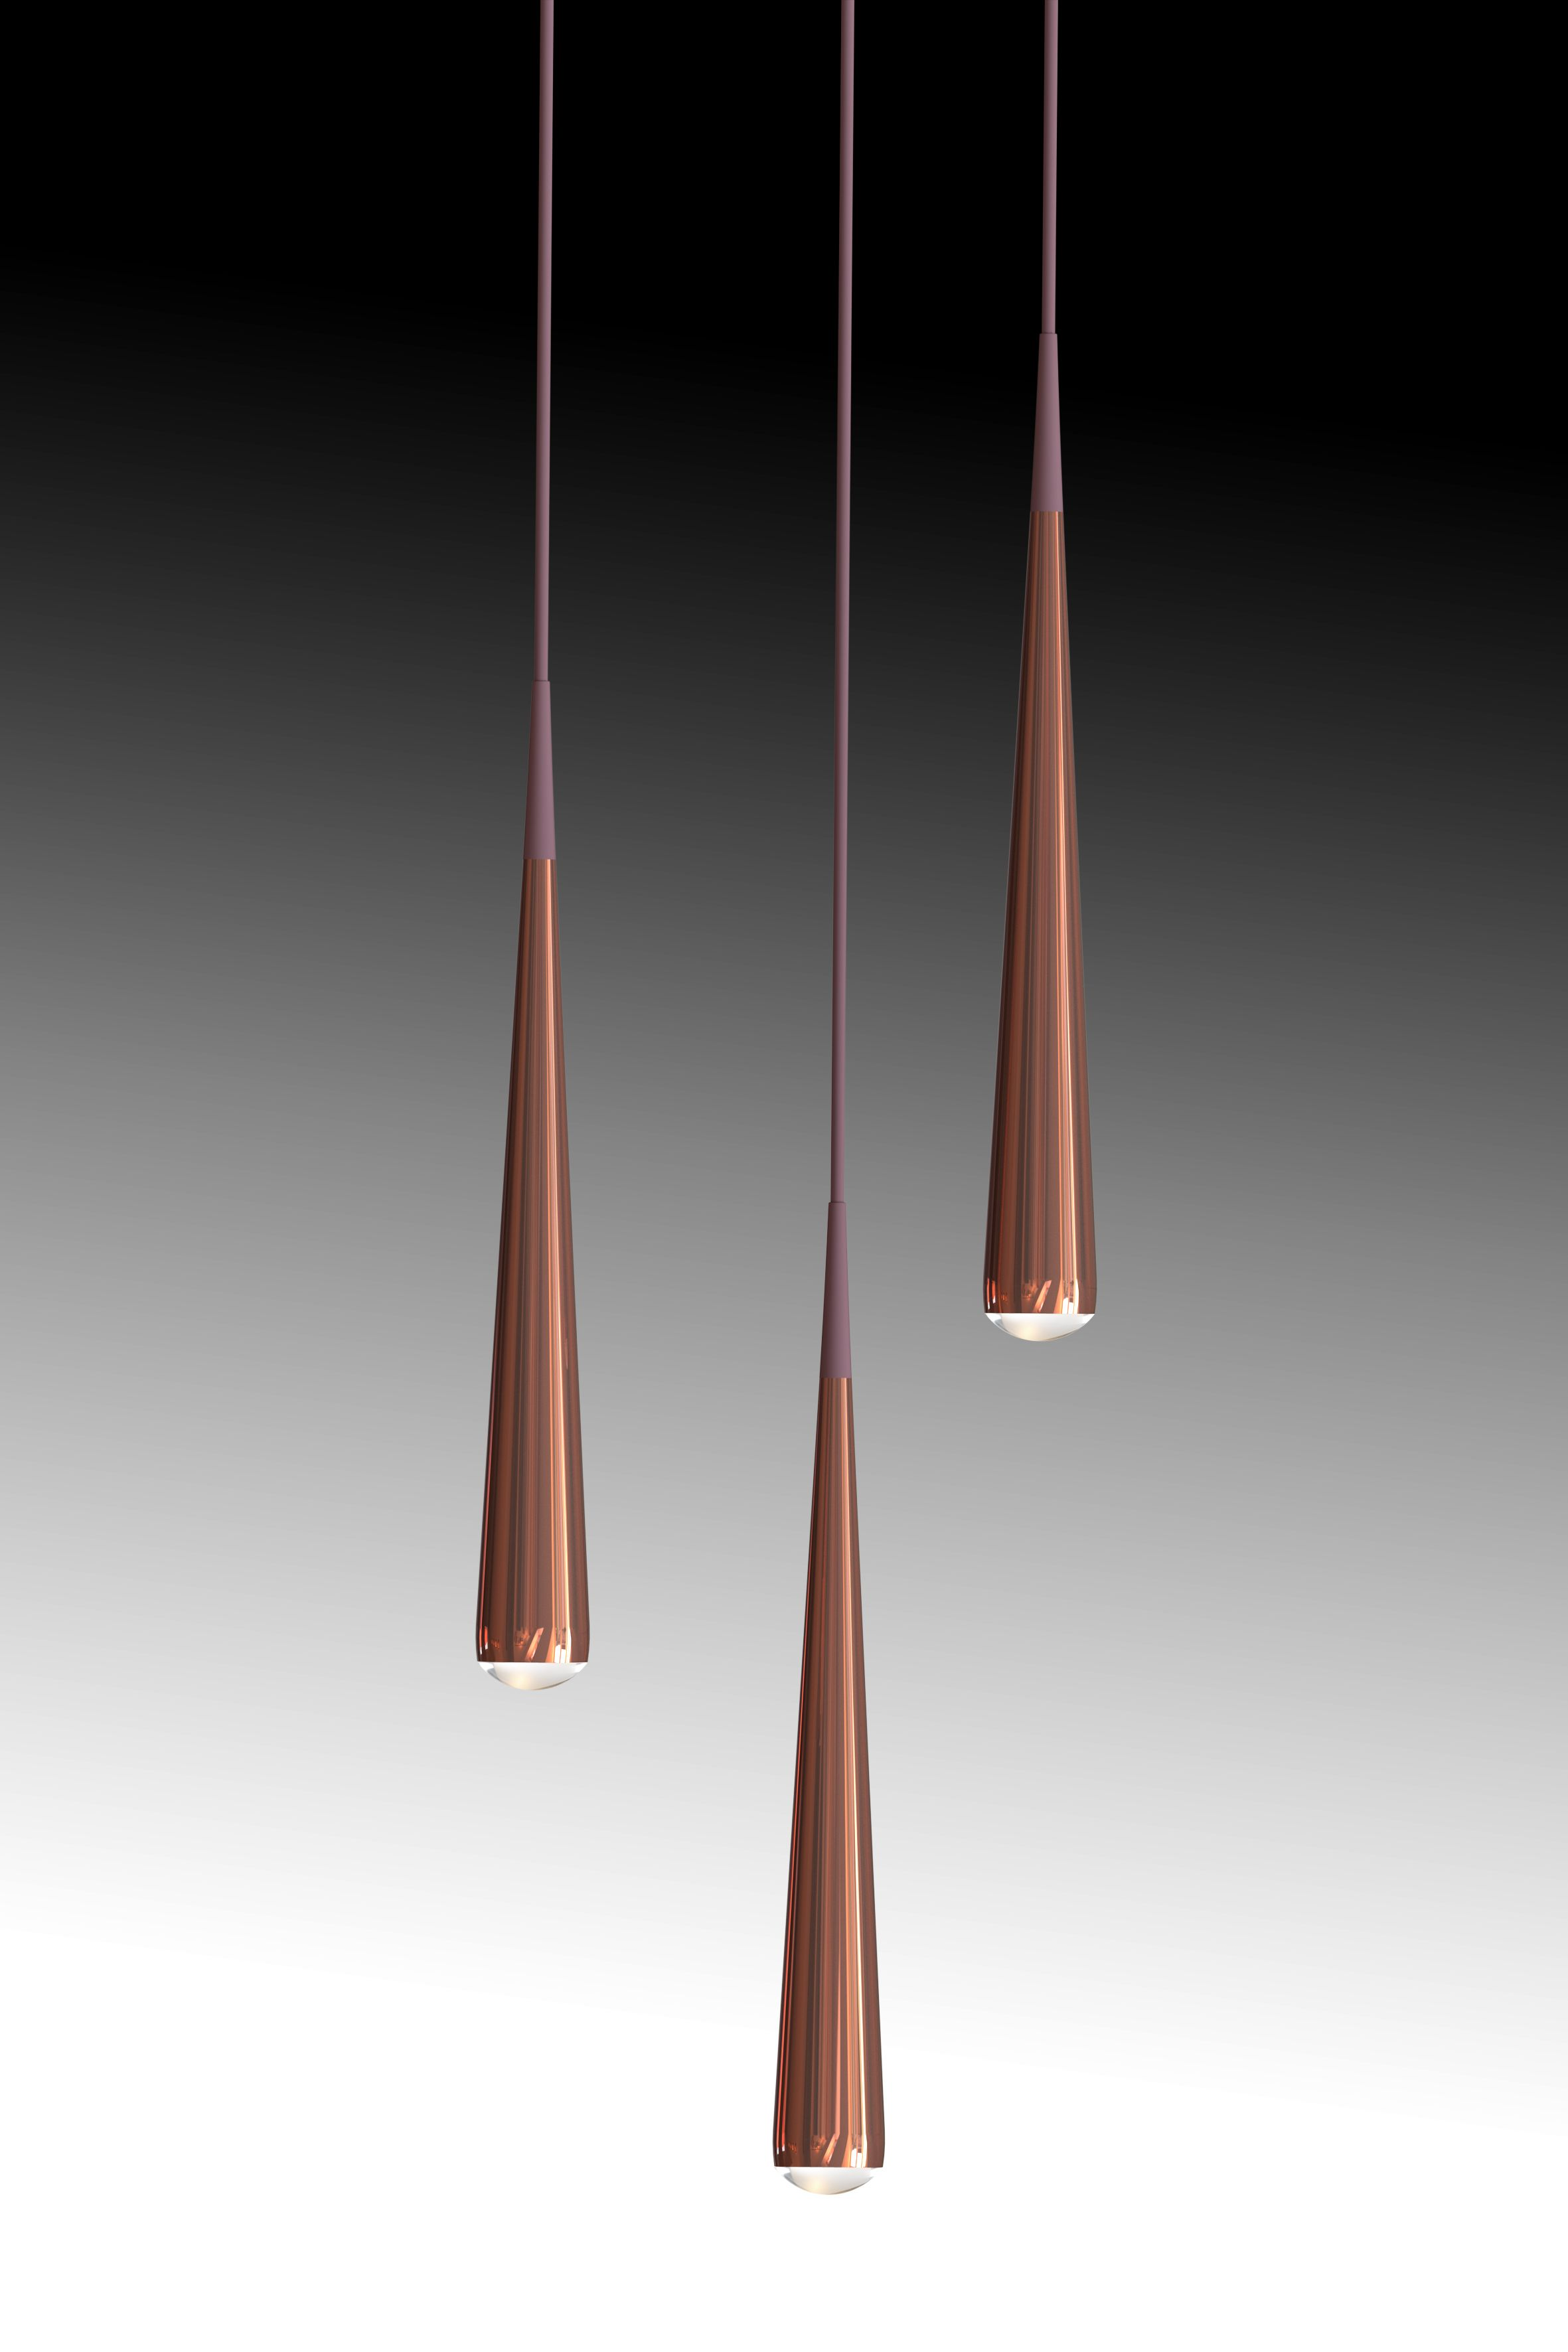 Fancy Tobias Grau suspended reading lamps over your bedside tables